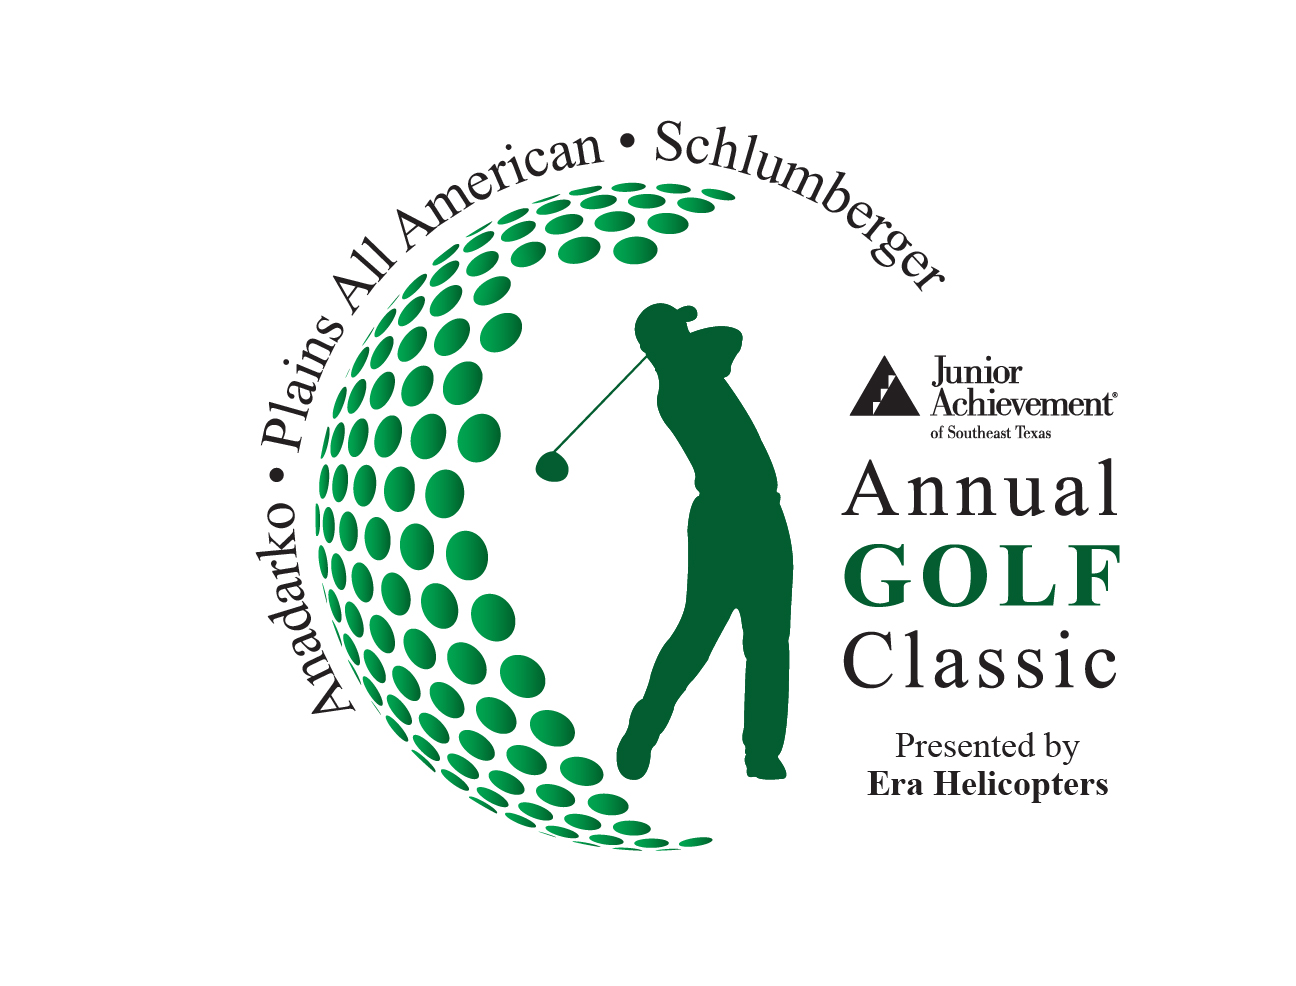 27th Annual Anadarko | Plains All American | Schlumberger Golf Classic presented by Era Helicopters